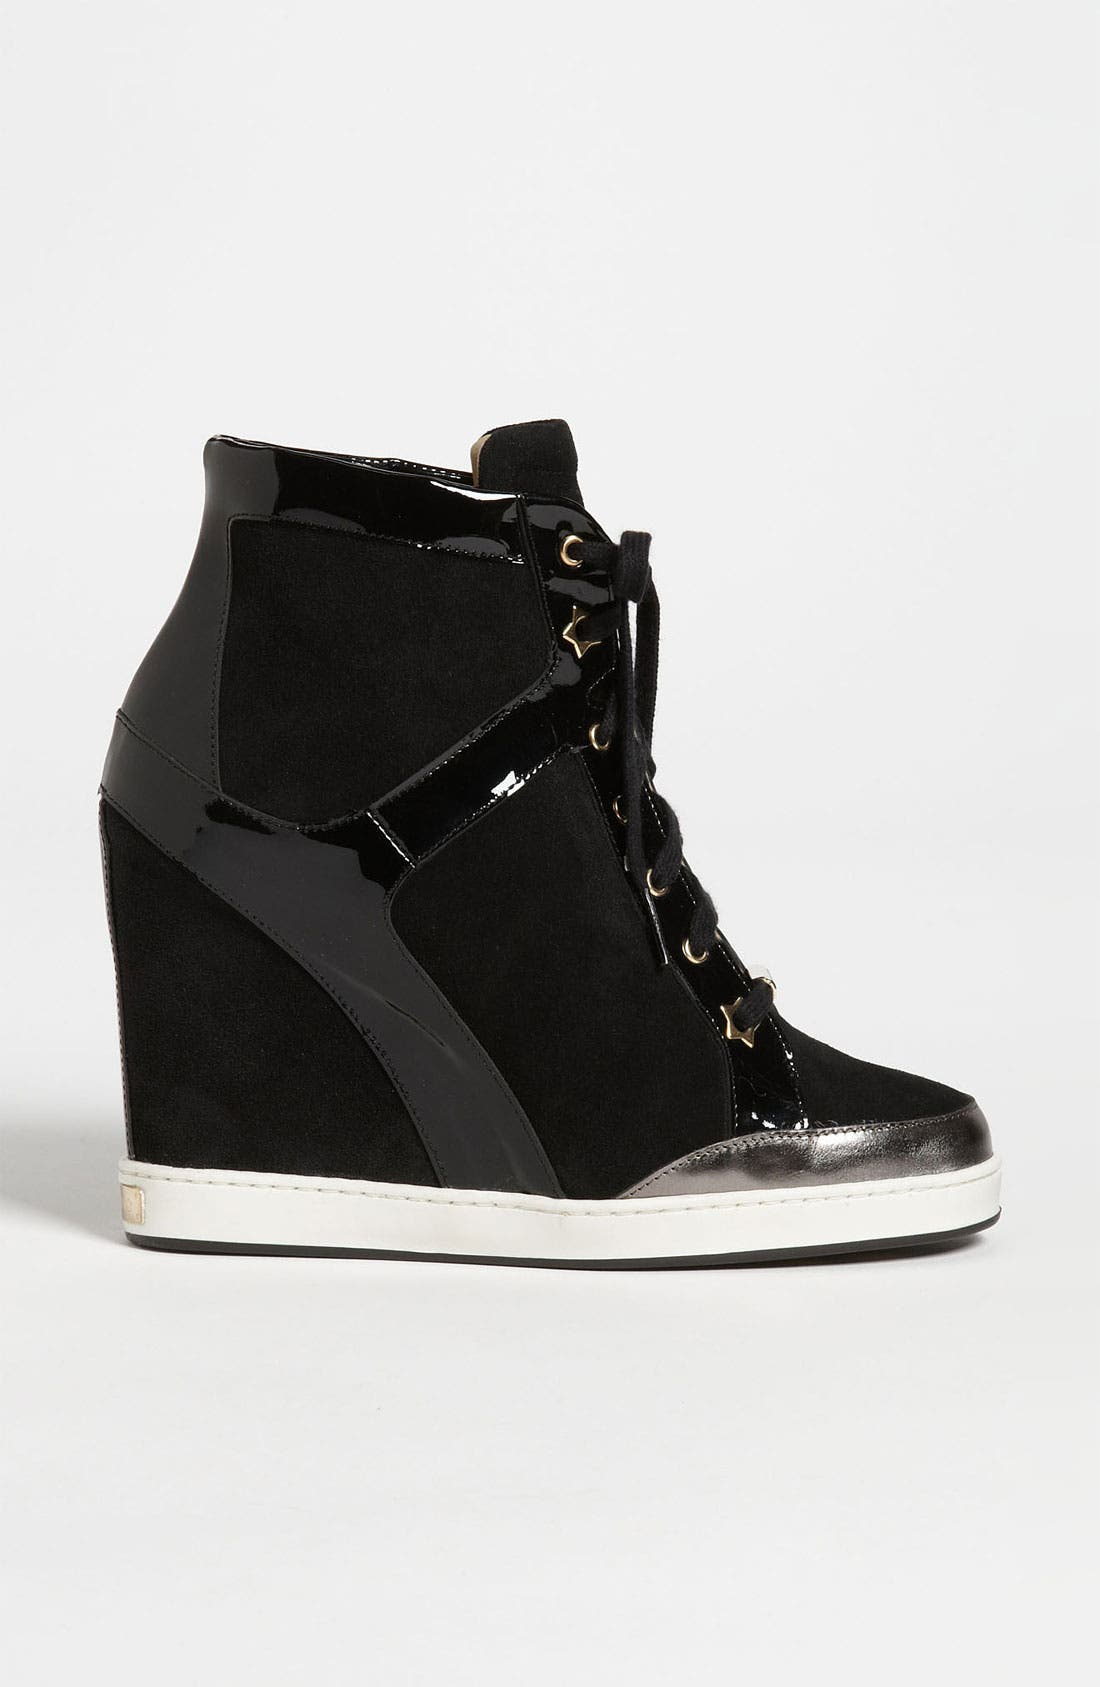 JIMMY CHOO, 'Panama' Wedge Sneaker, Alternate thumbnail 4, color, 001